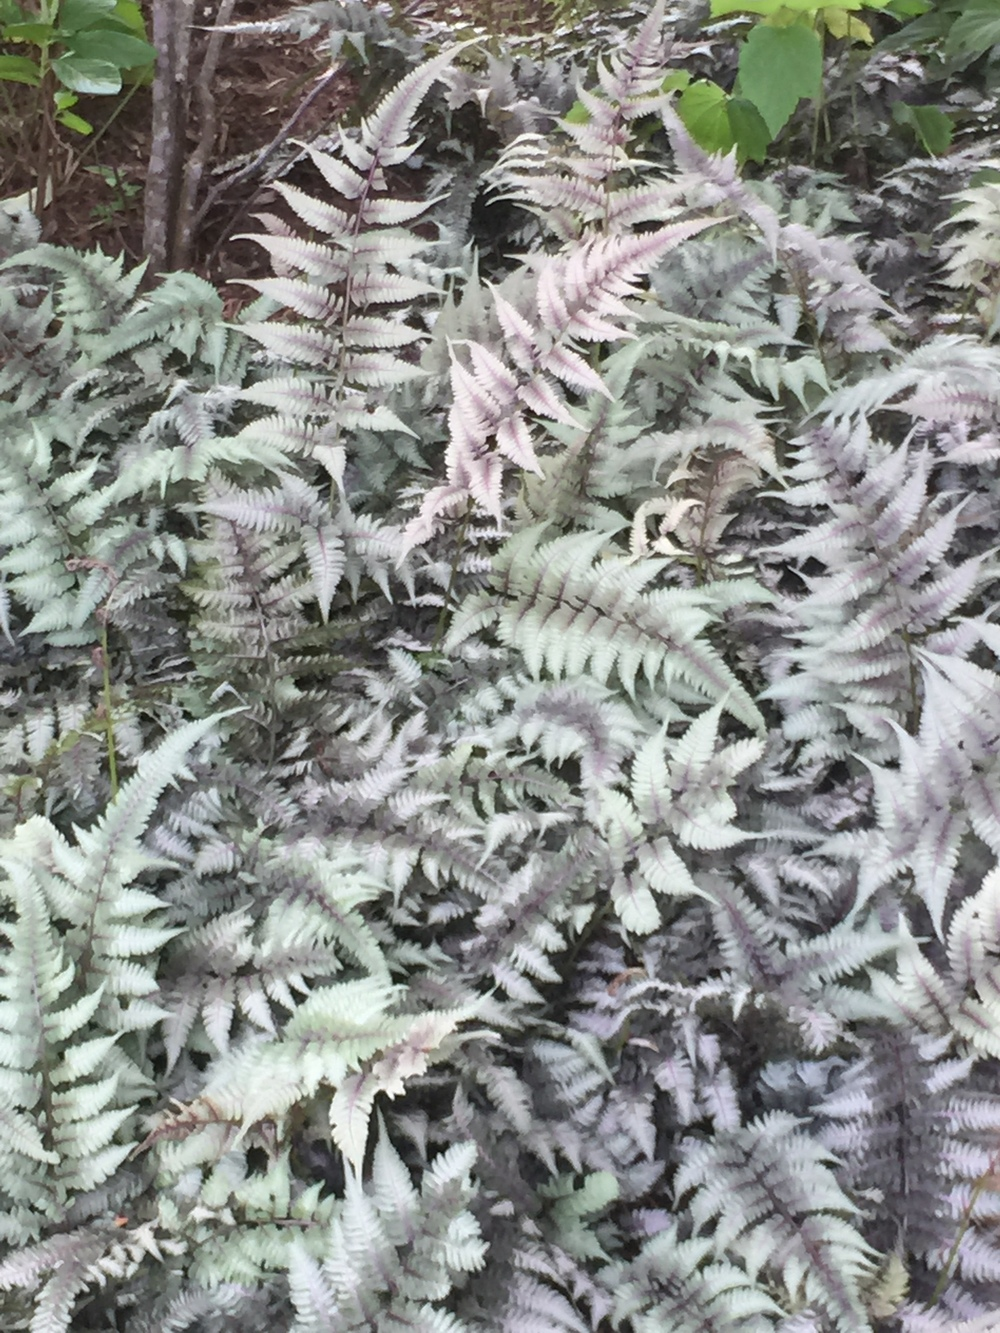 Japanese painted fern; foliage has a pinkish vein  that gives color all season.